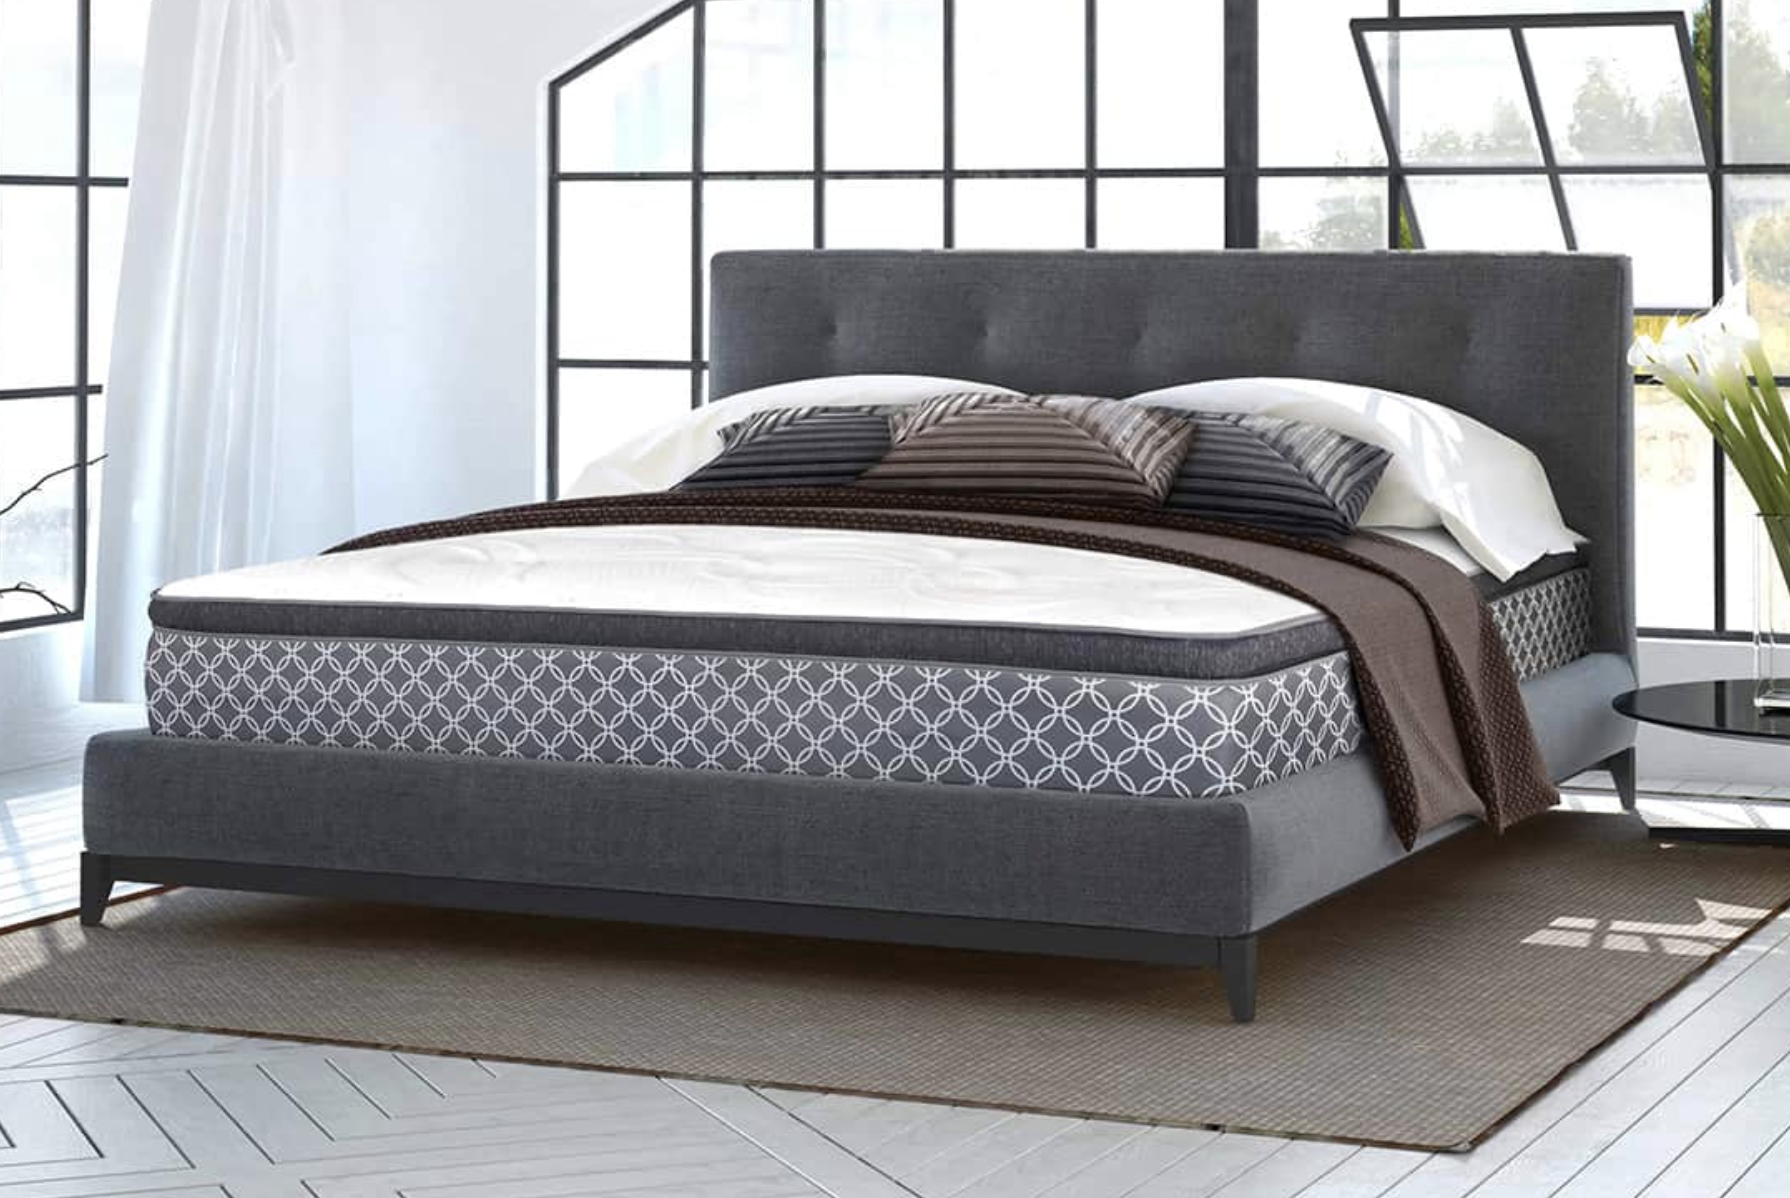 Cardi S Furniture Mattress In Cranston Ri Mattress Store